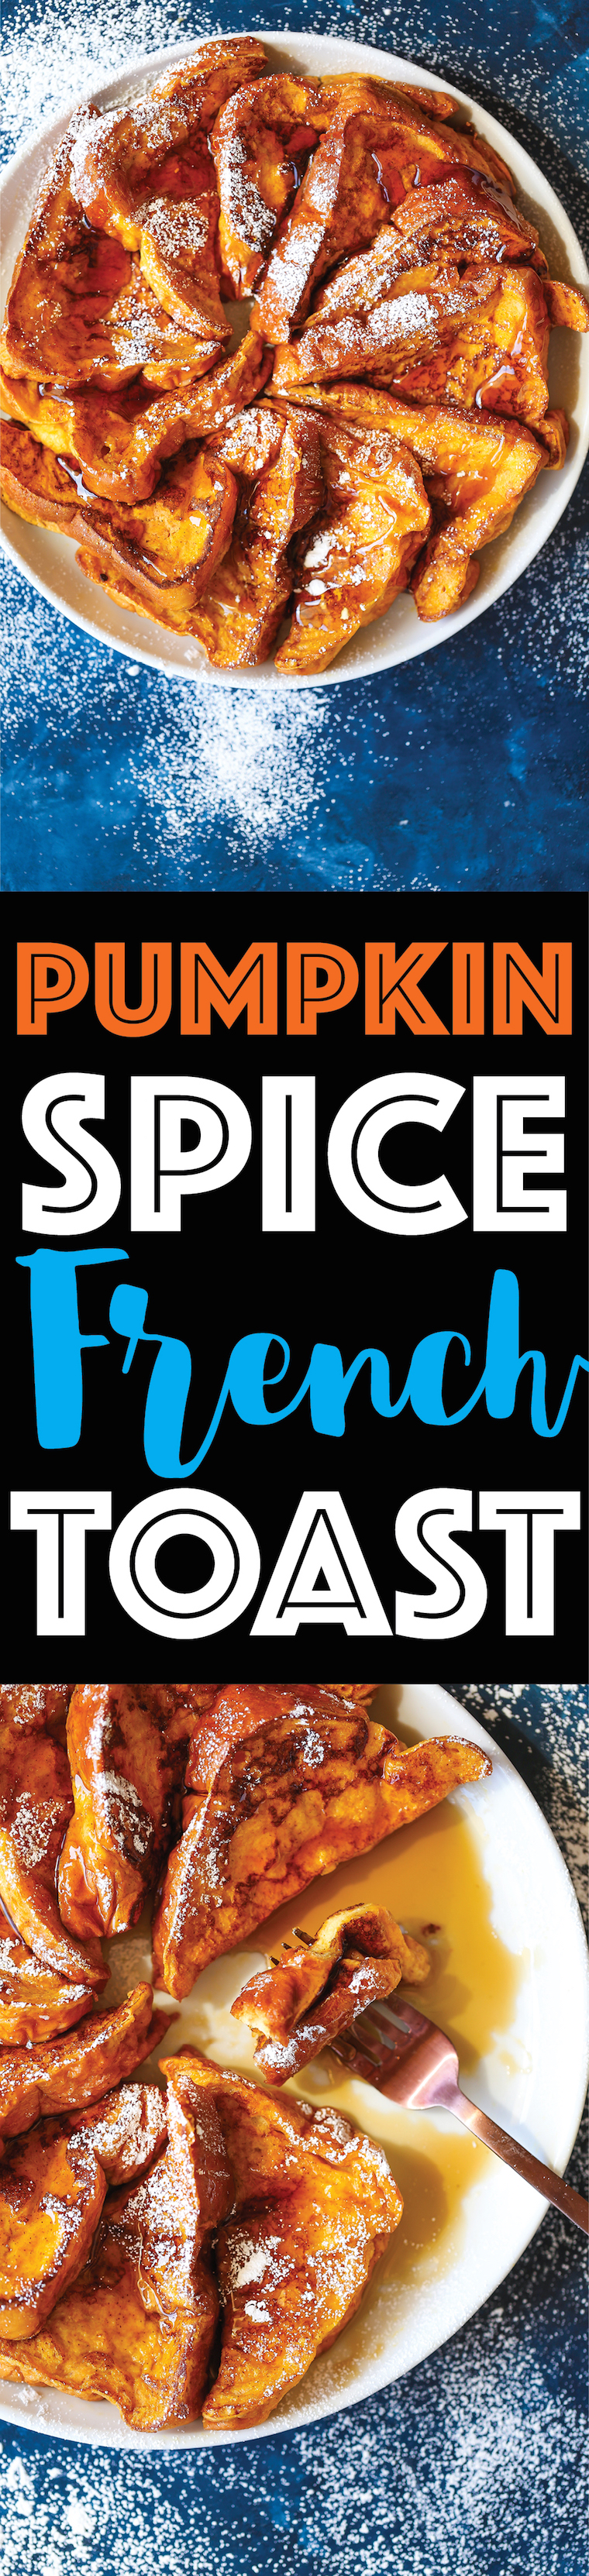 Pumpkin Spice French Toast - The most amazing Fall morning breakfast! Perfectly sweet and spiced using thick slices of bread that just melt in your mouth!